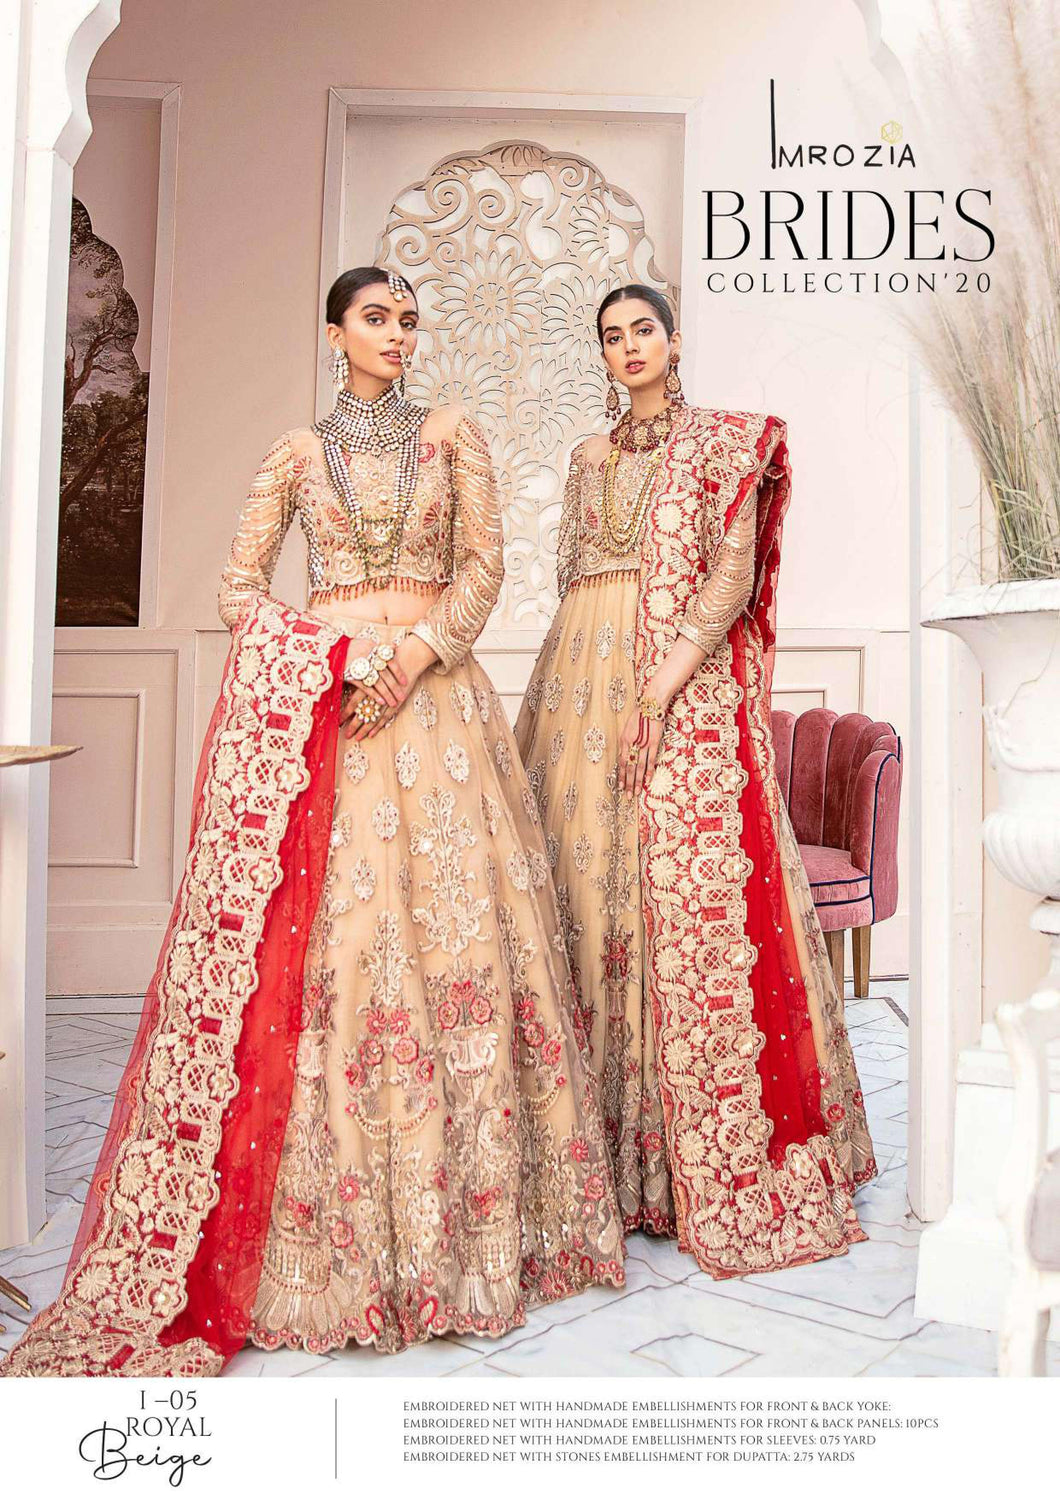 Imrozia Bridal Collection 2020 | IB-05 Royal Beige